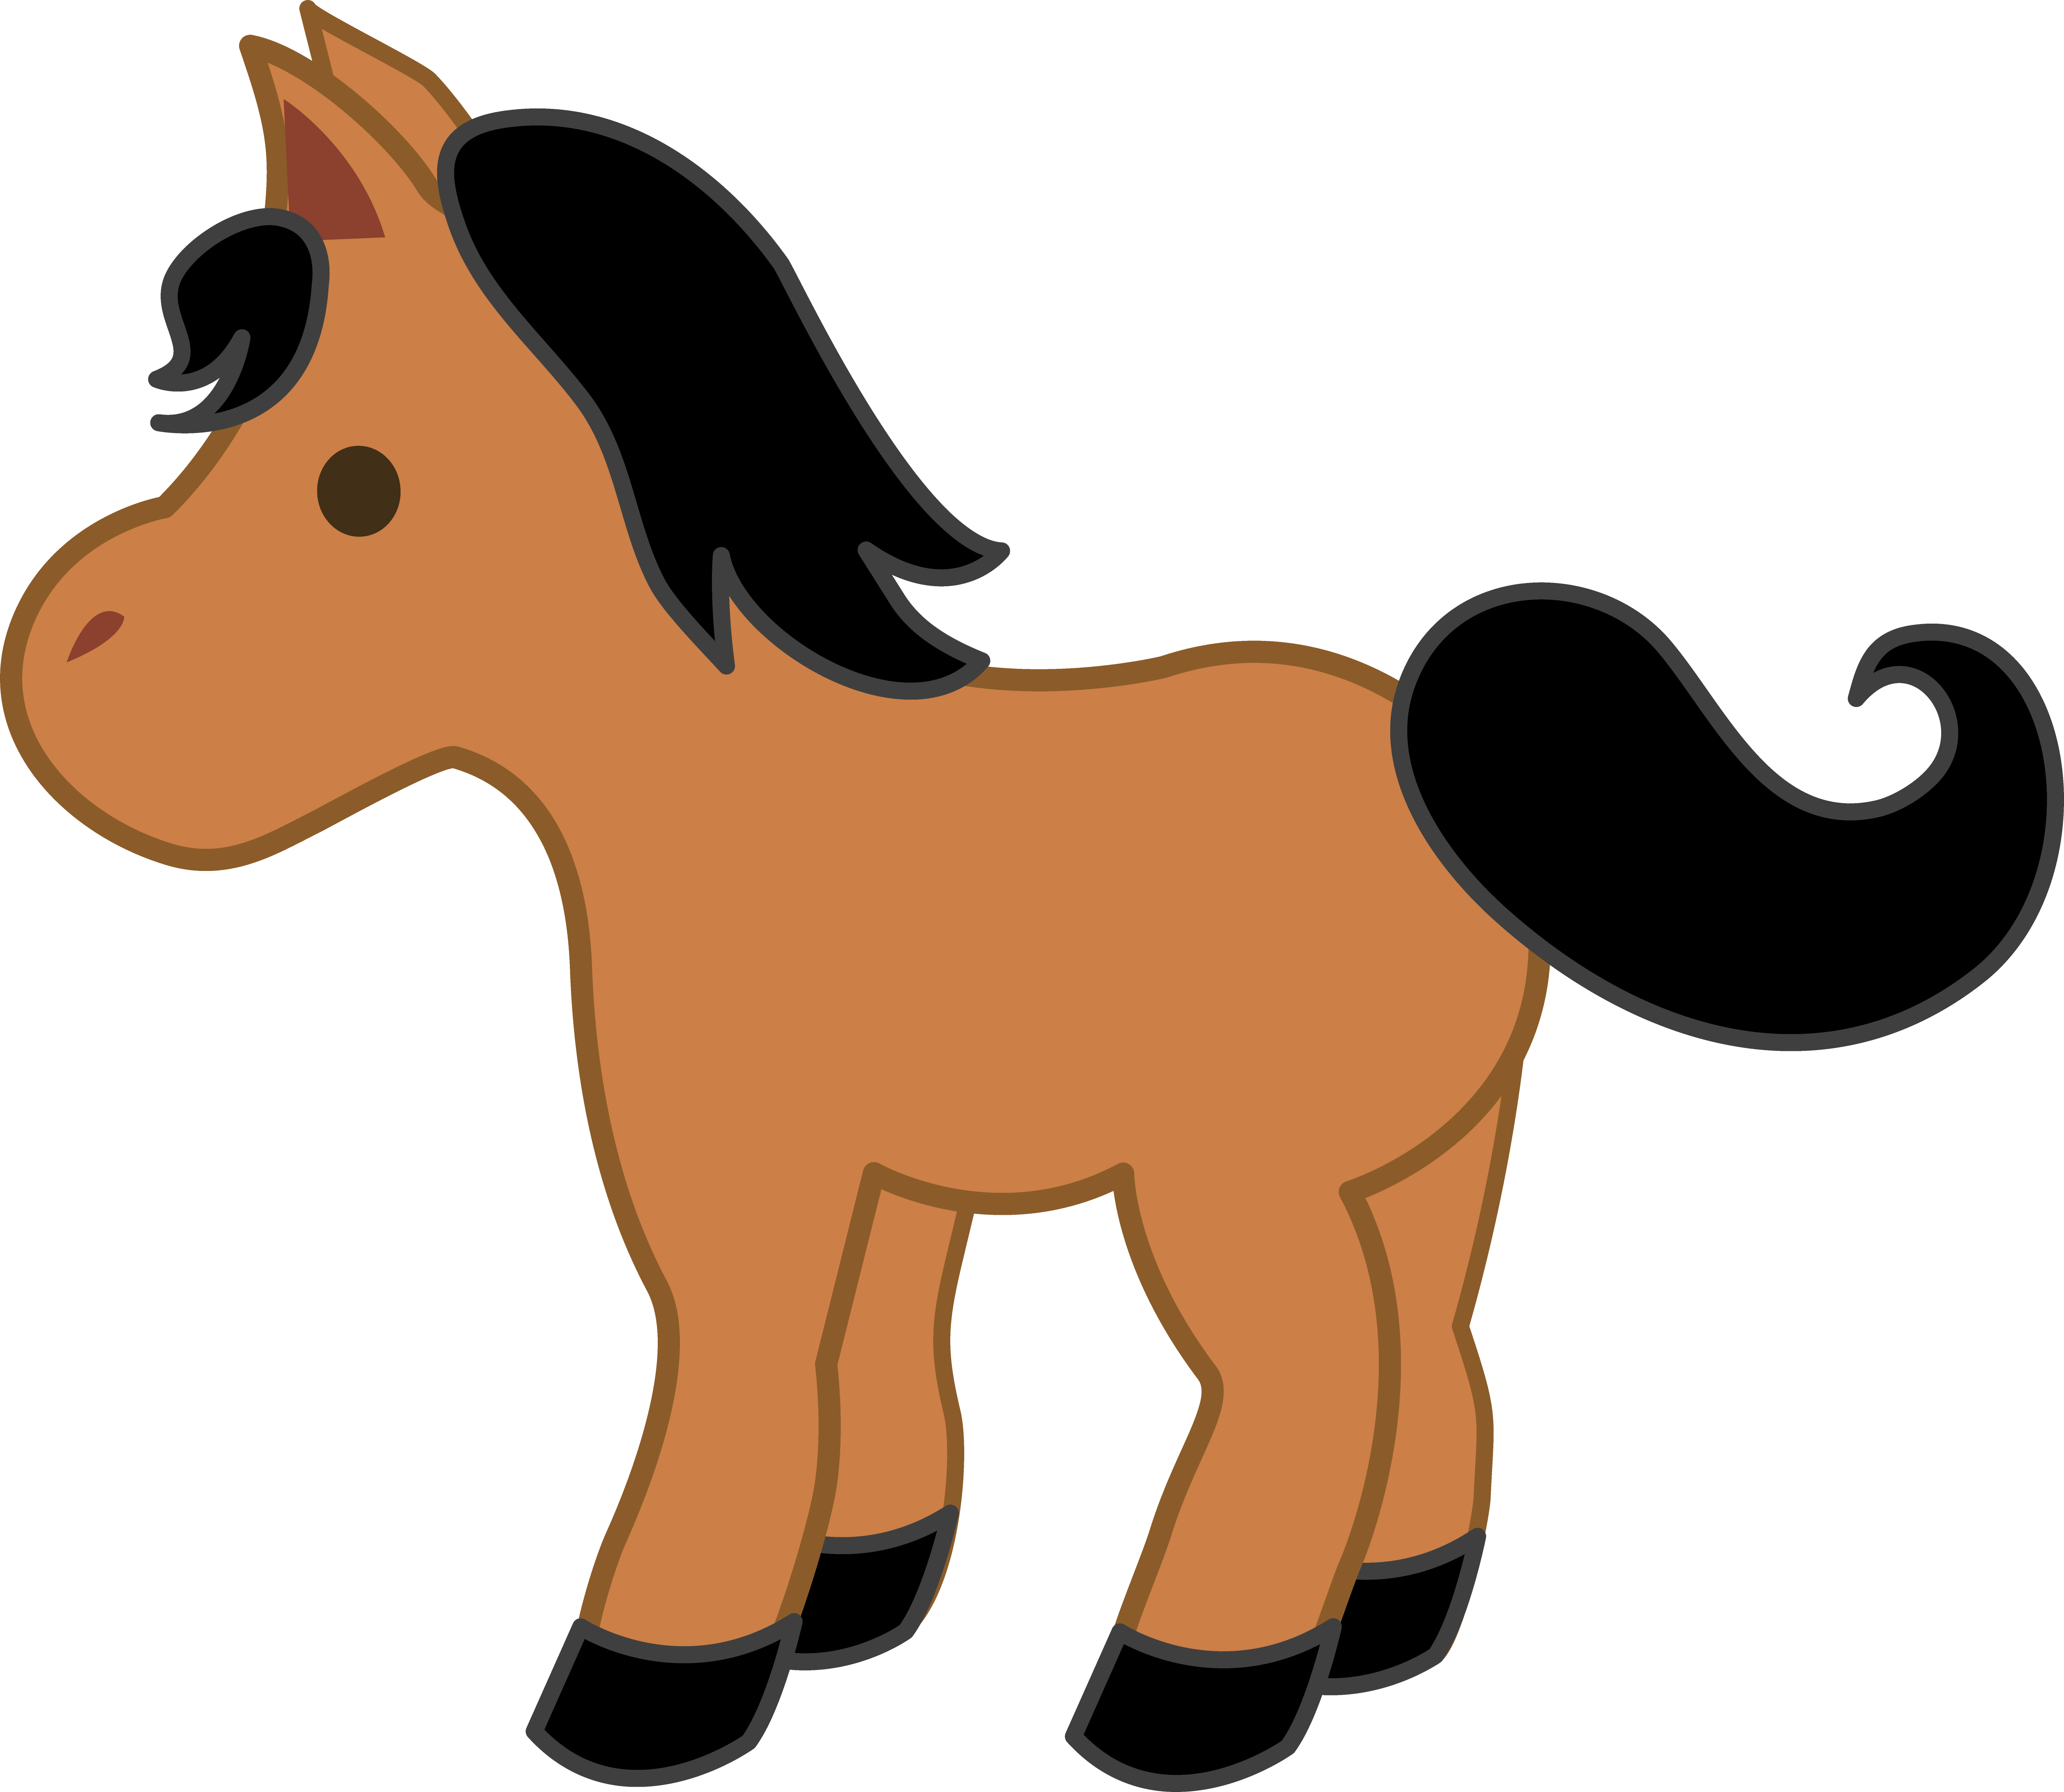 Cute Baby Horse Clipart | Clipart Panda - Free Clipart Images